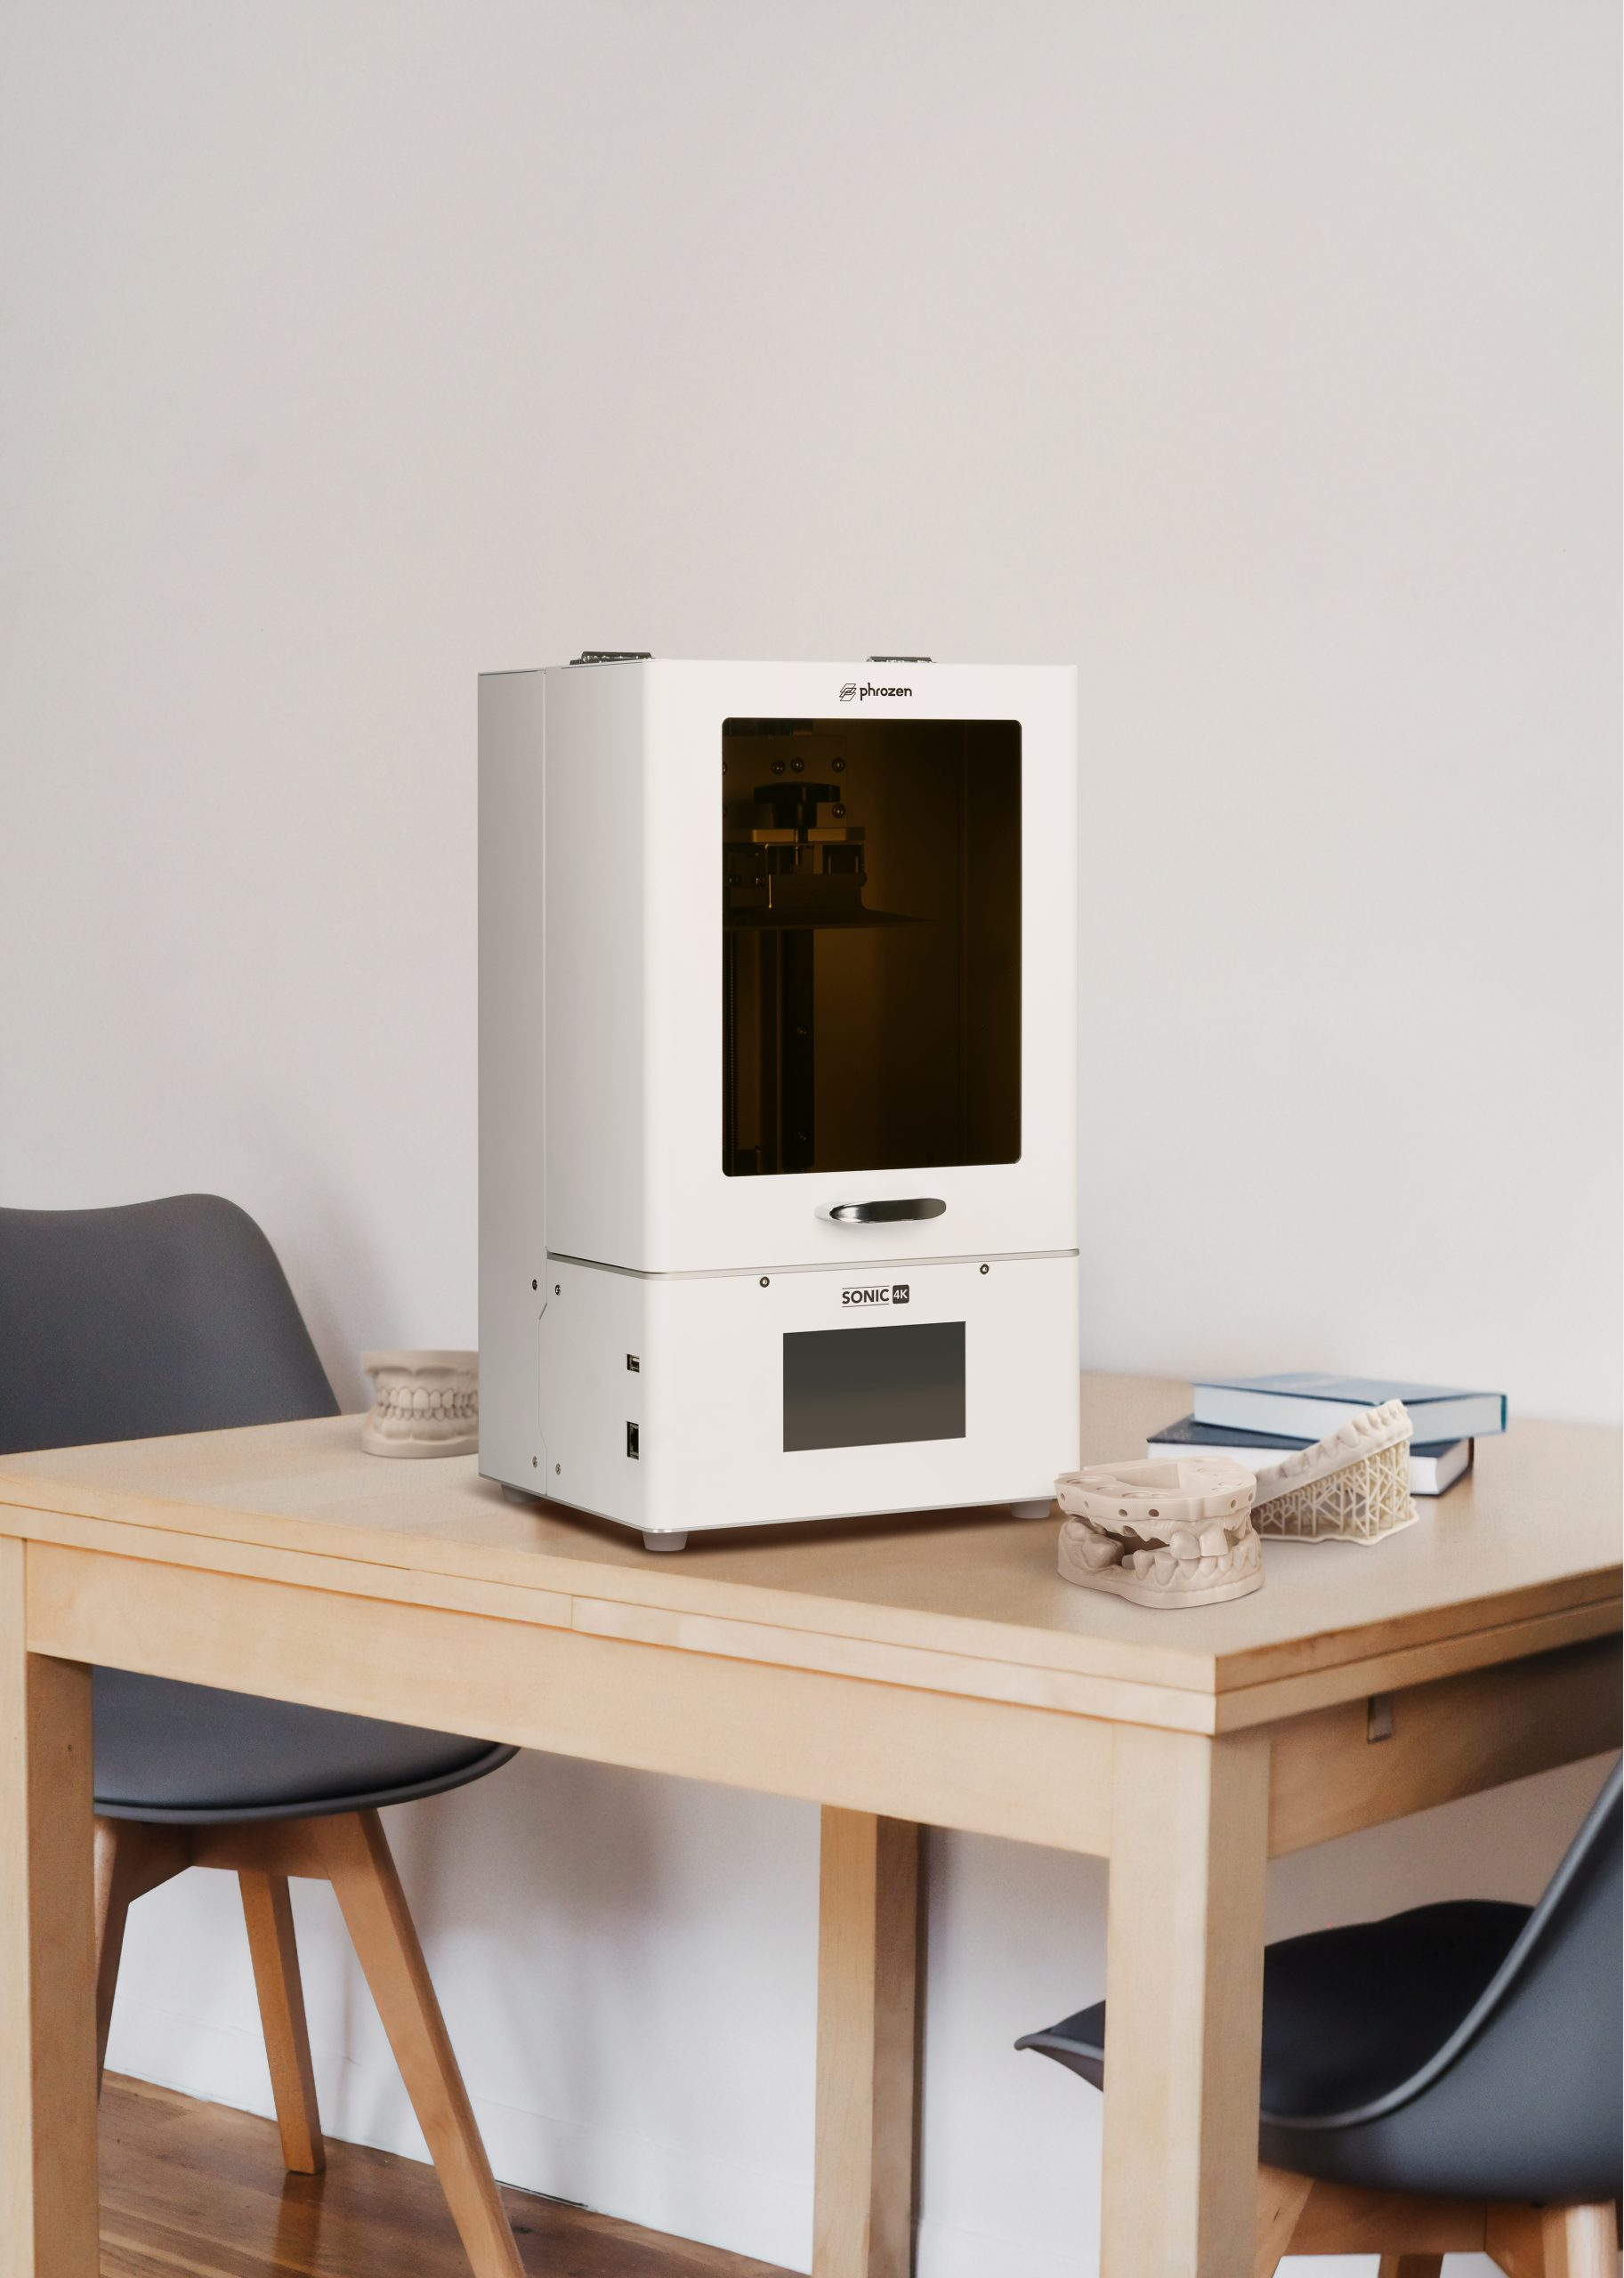 4K resin 3D printer by Phrozen